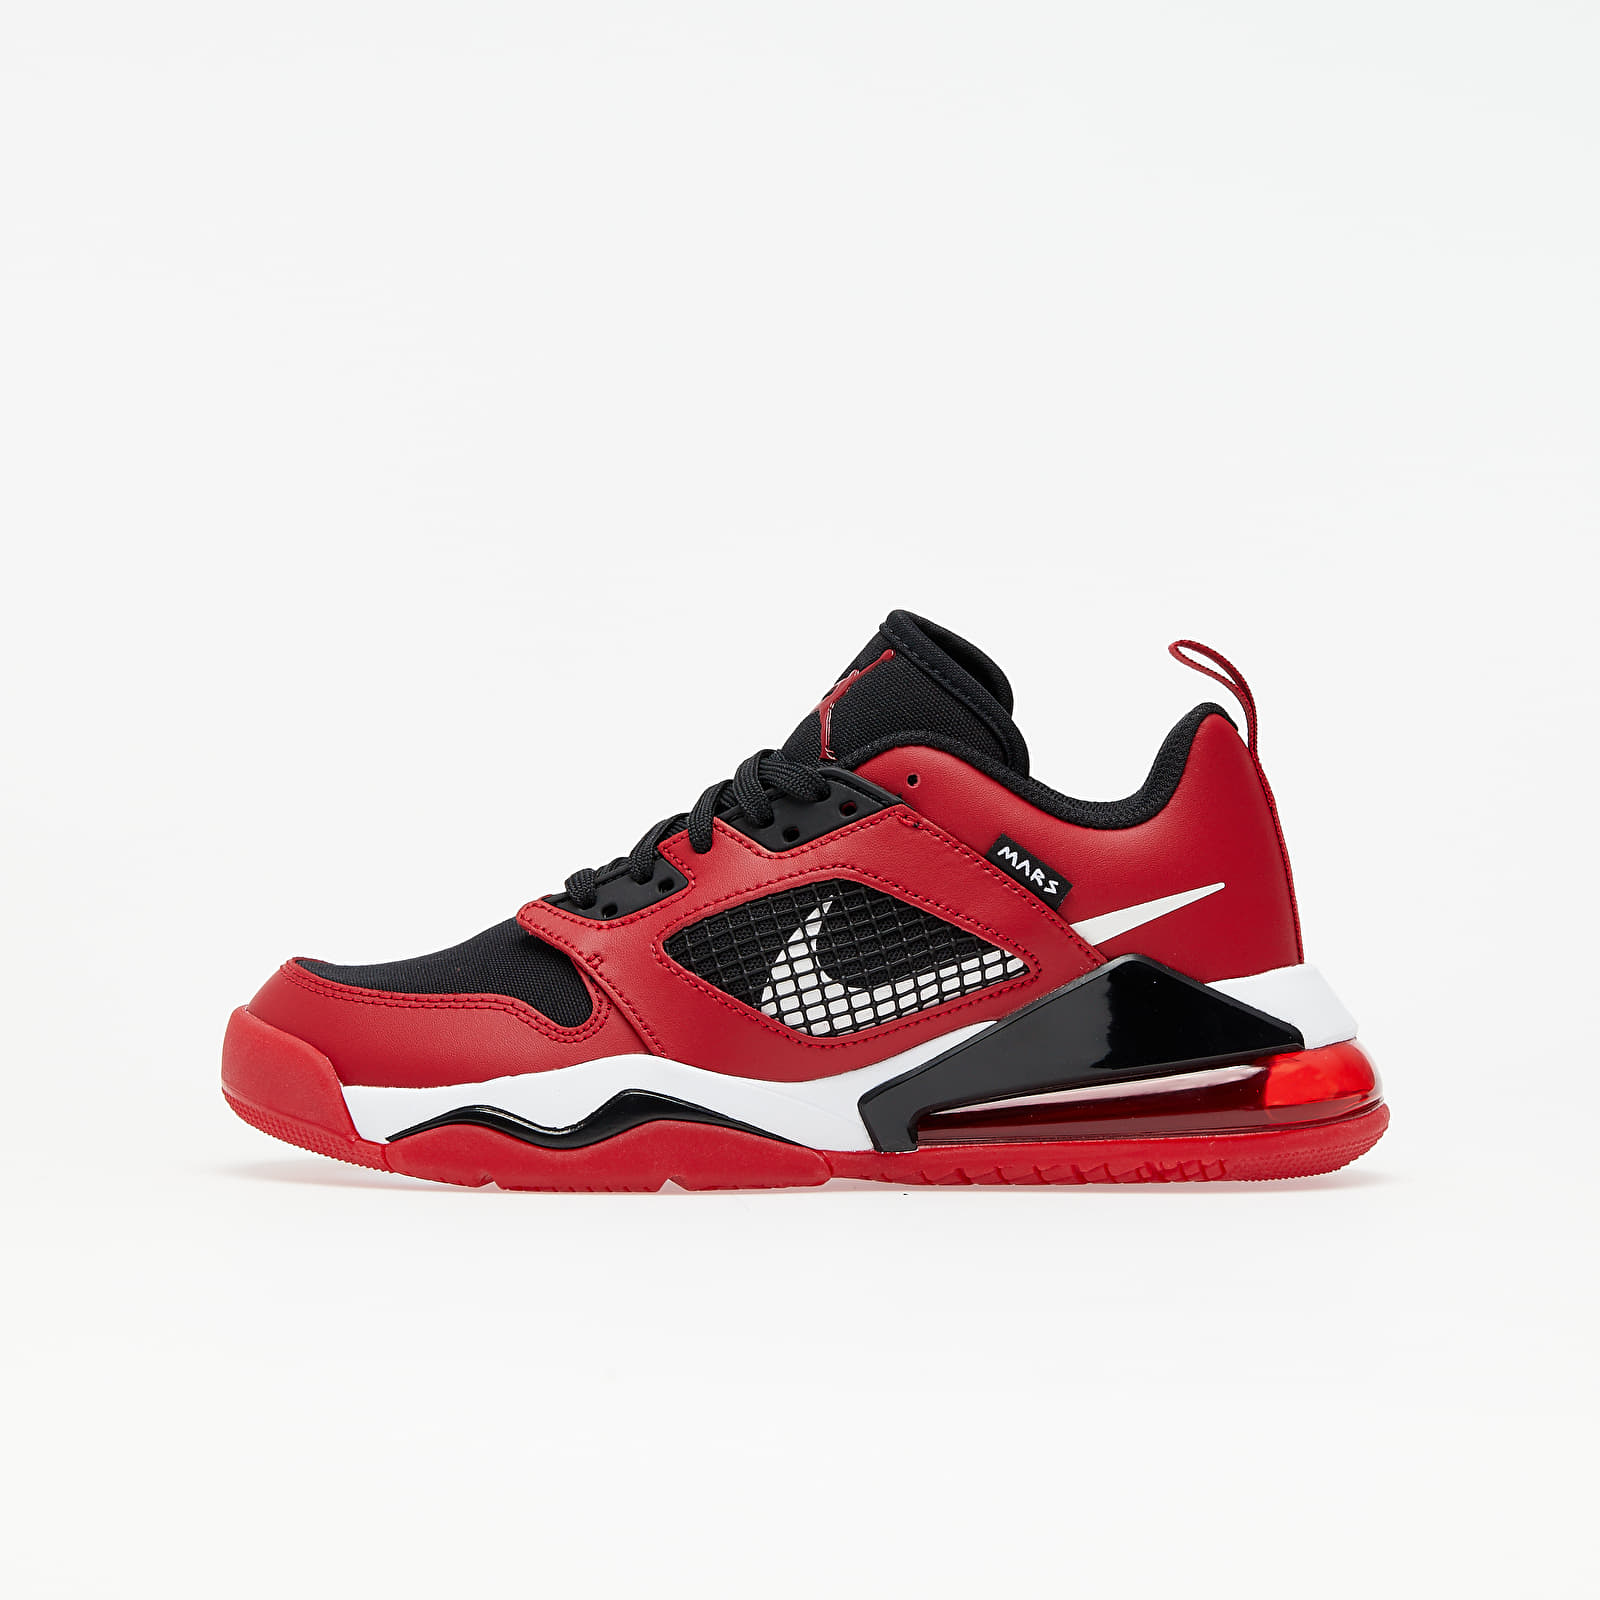 Încălțăminte copii Jordan Mars 270 Low (GS) Gym Red/ White-Black